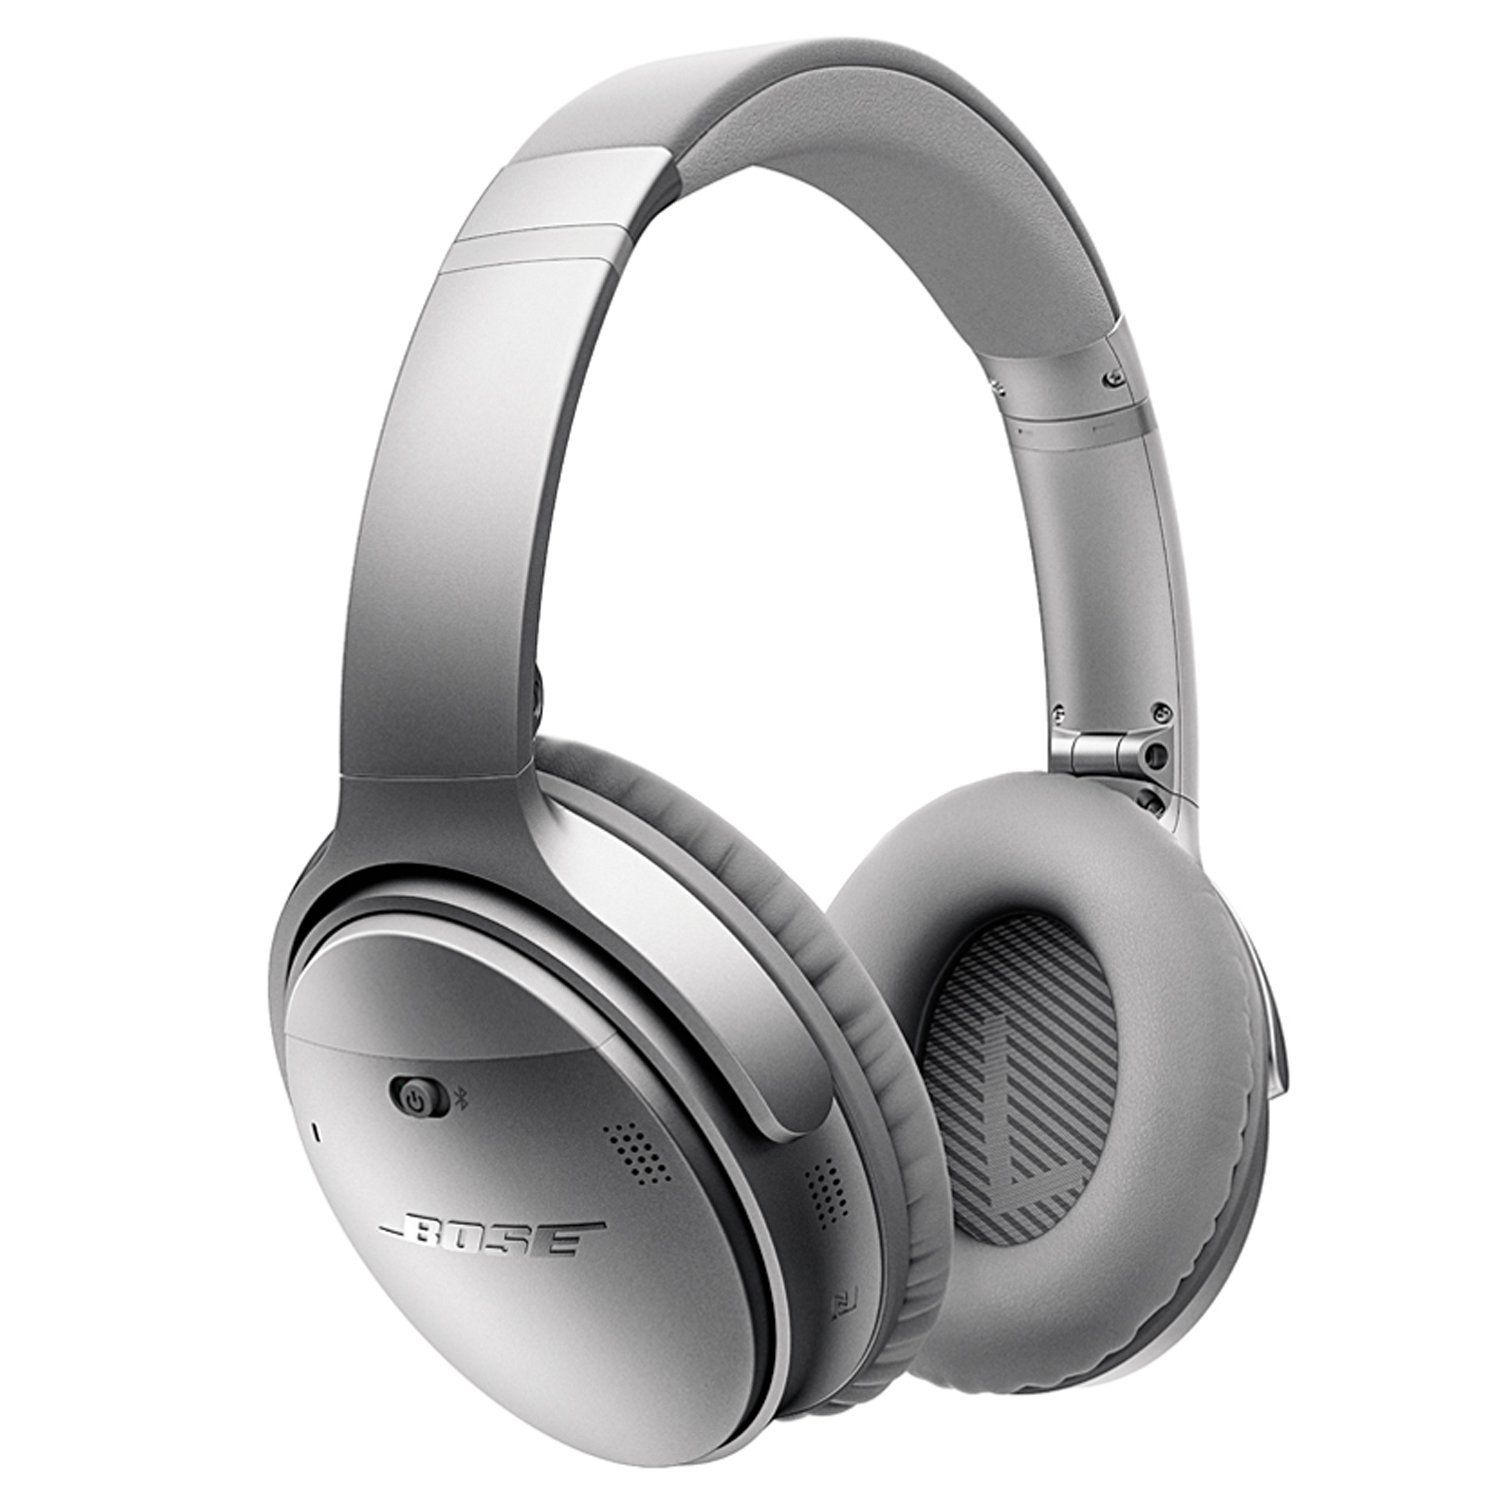 12ad78020a4 Bose QuietComfort 35 Wireless Headphones Silver - Buy Bose QuietComfort 35  Wireless Headphones Silver Online at Best Prices in India on Snapdeal